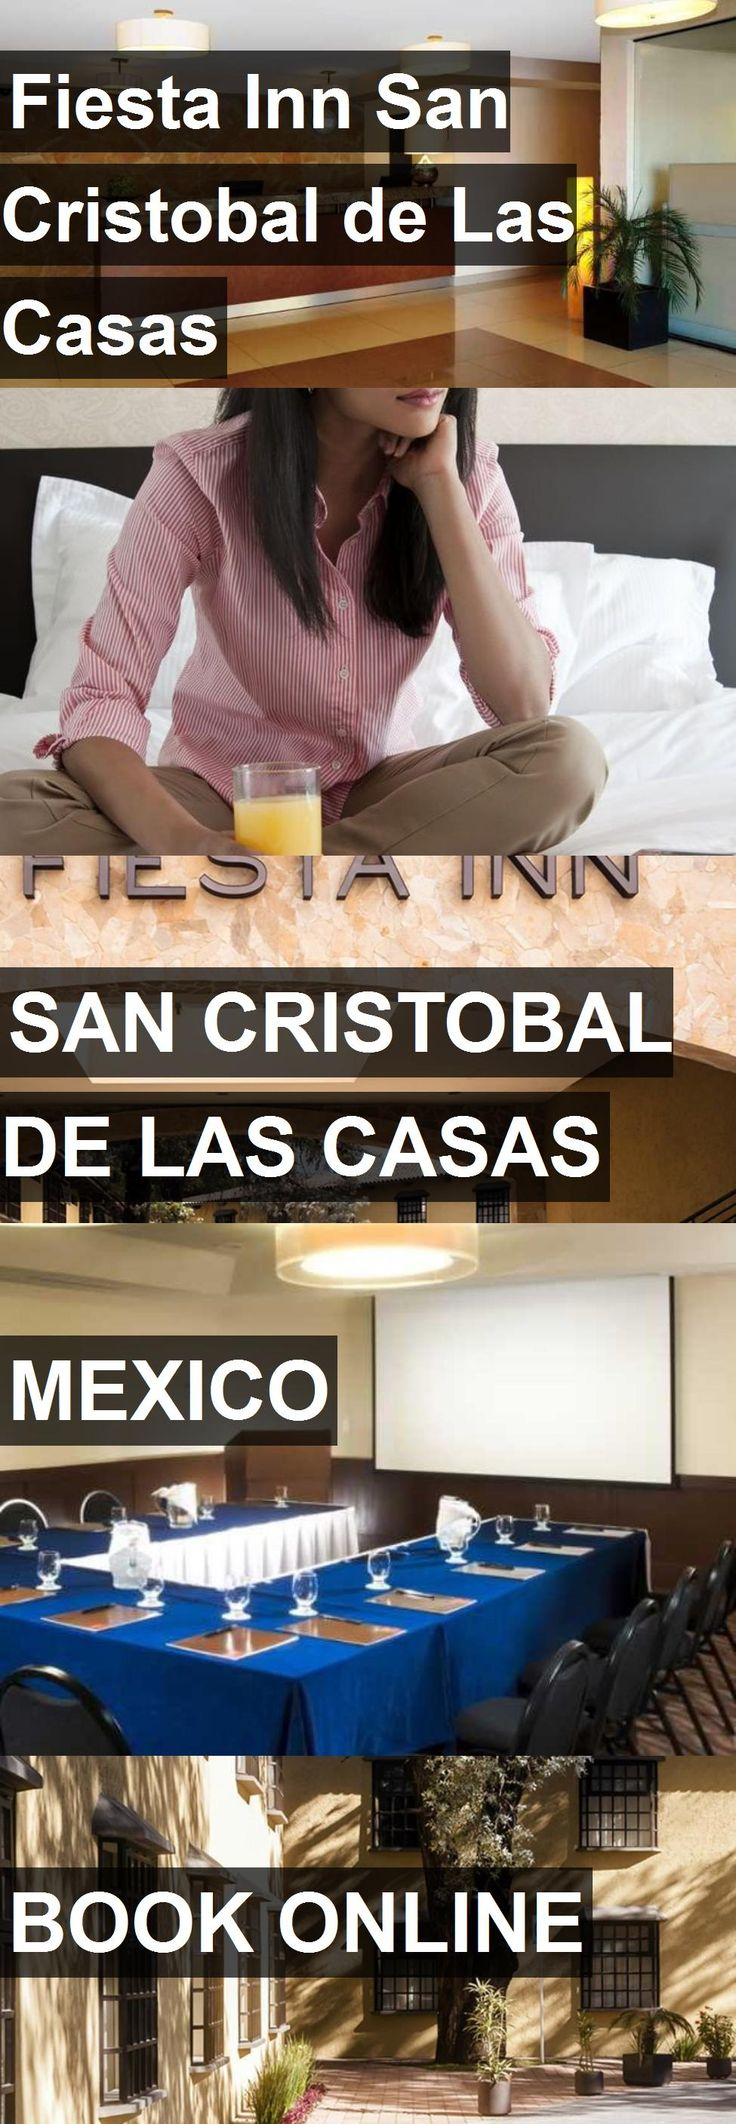 Hotel Fiesta Inn San Cristobal de Las Casas in San Cristobal de las Casas, Mexico. For more information, photos, reviews and best prices please follow the link. #Mexico #SanCristobaldelasCasas #travel #vacation #hotel